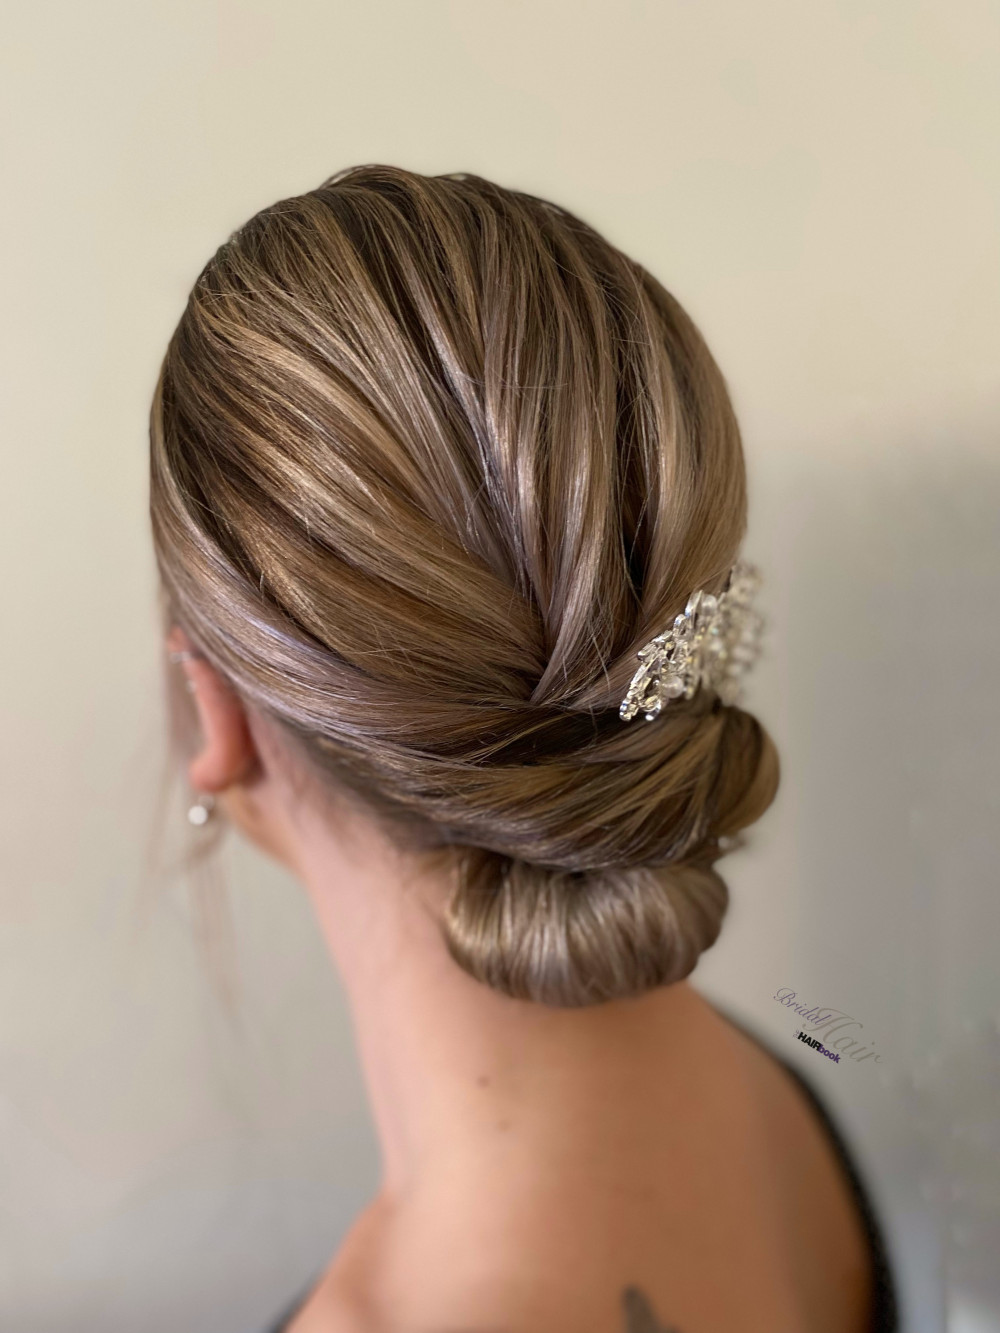 Timeless and elegant low chignon Perfect for brides and bridesmaids - Make Me Bridal Artist: The Hairbook. #classic #bridalhair #updo #weddinghair